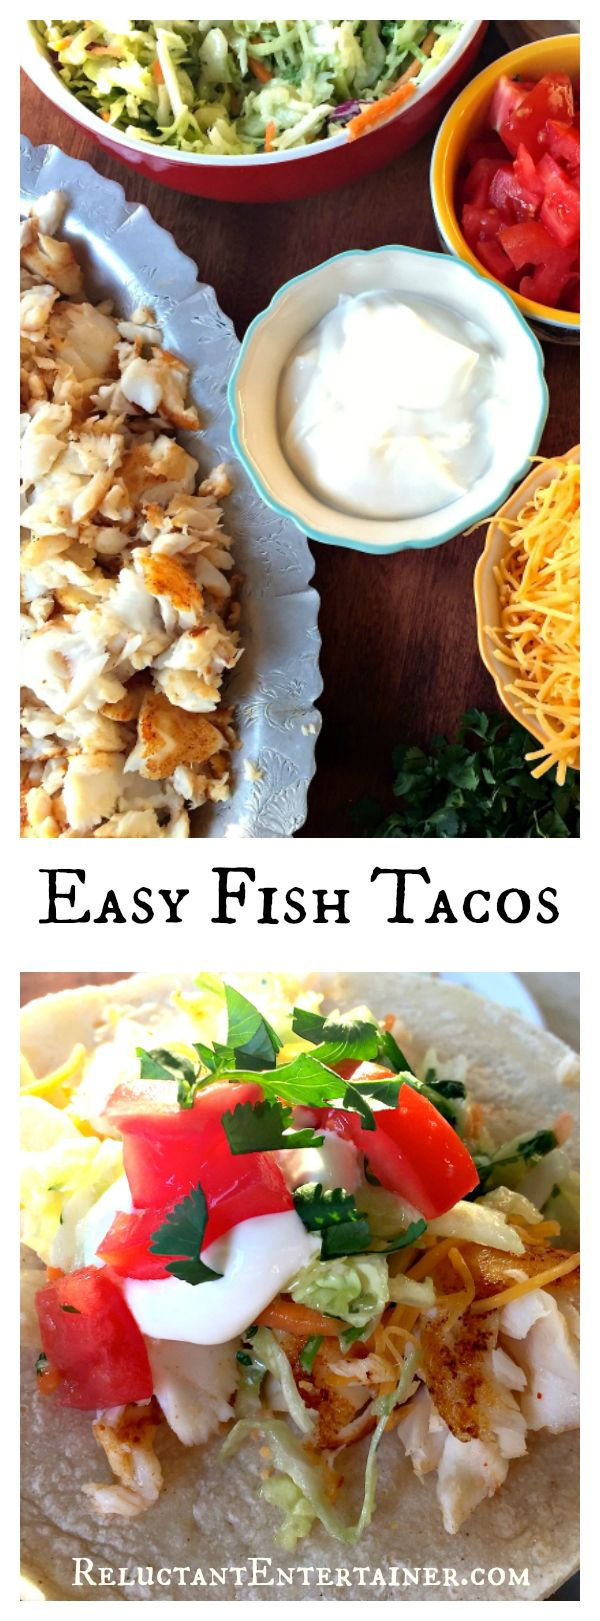 21 best cinco de mayo images on pinterest fiestas for Easy fish taco recipes